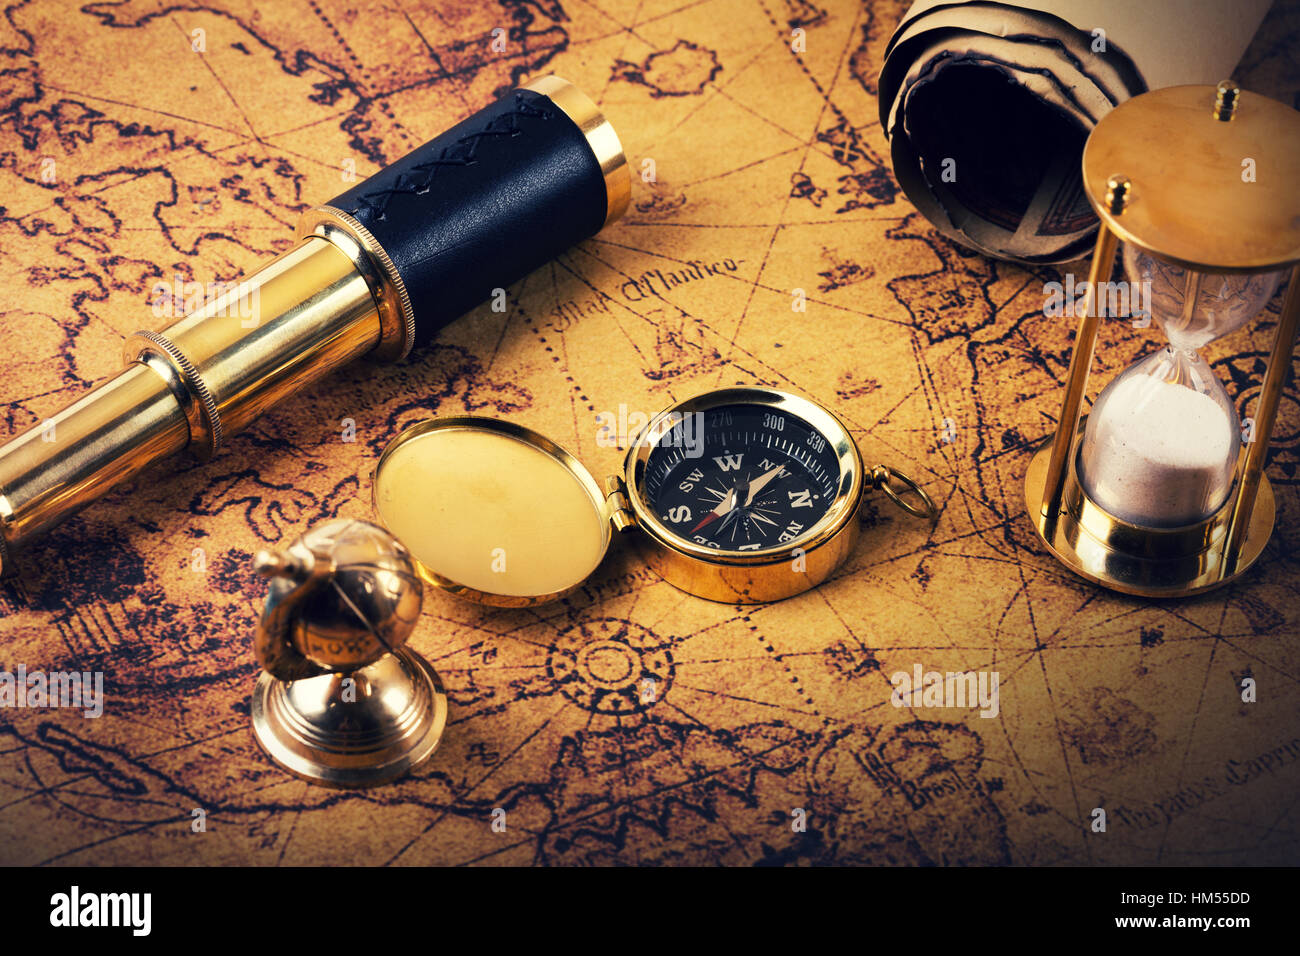 looking for adventures concept - vintage navigation items Stock Photo